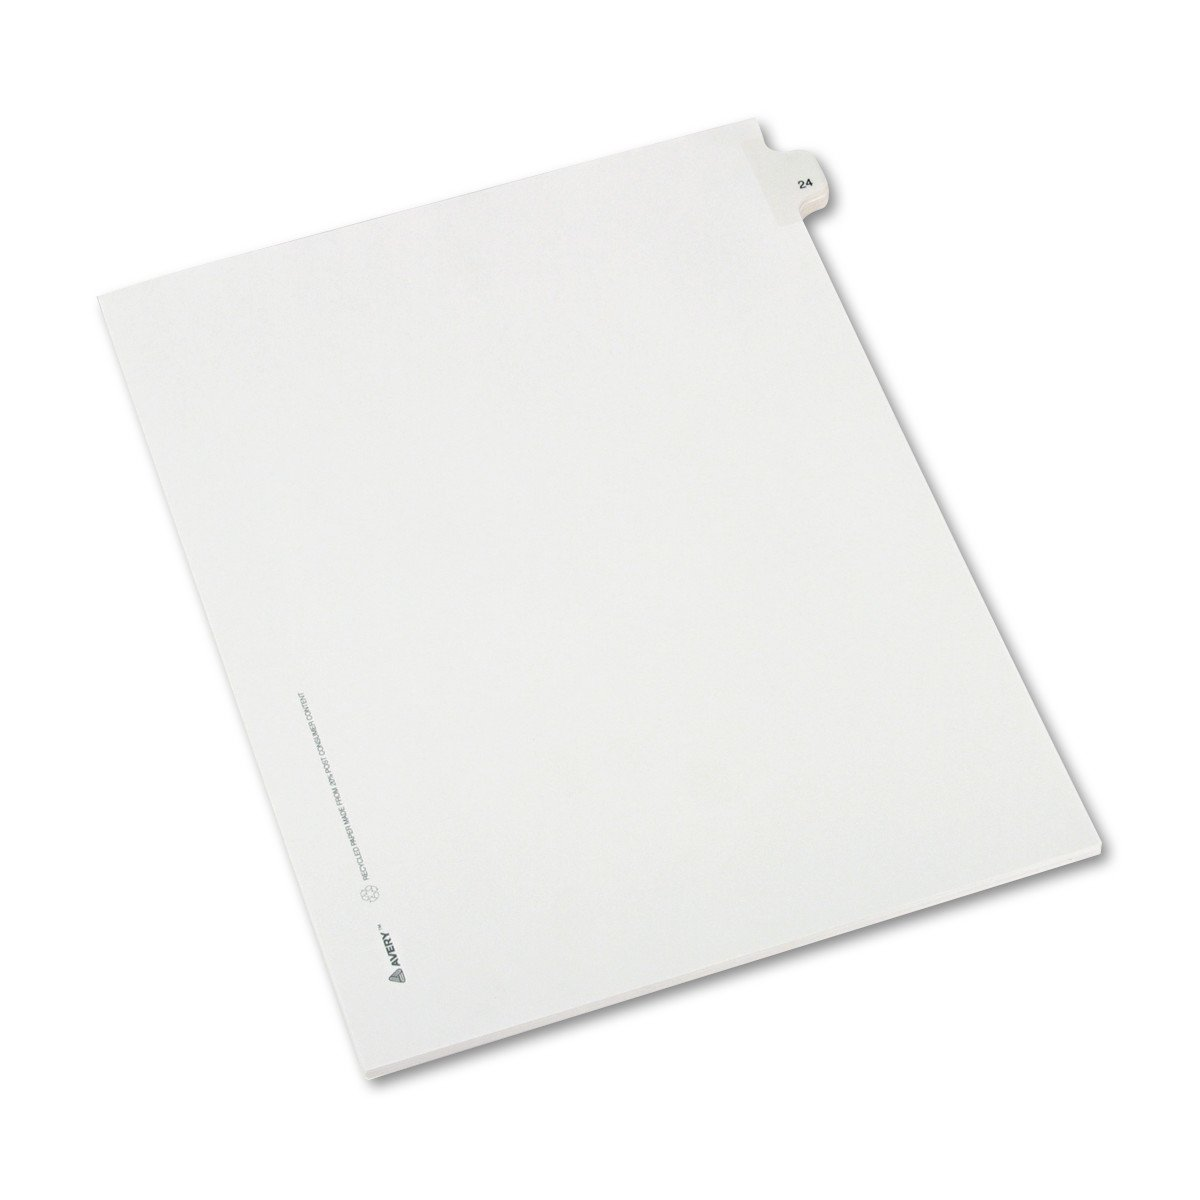 Avery Individual Legal Exhibit Dividers, Allstate Style, 24, Side Tab, 8.5 x 11 inches, Pack of 25 (82222)